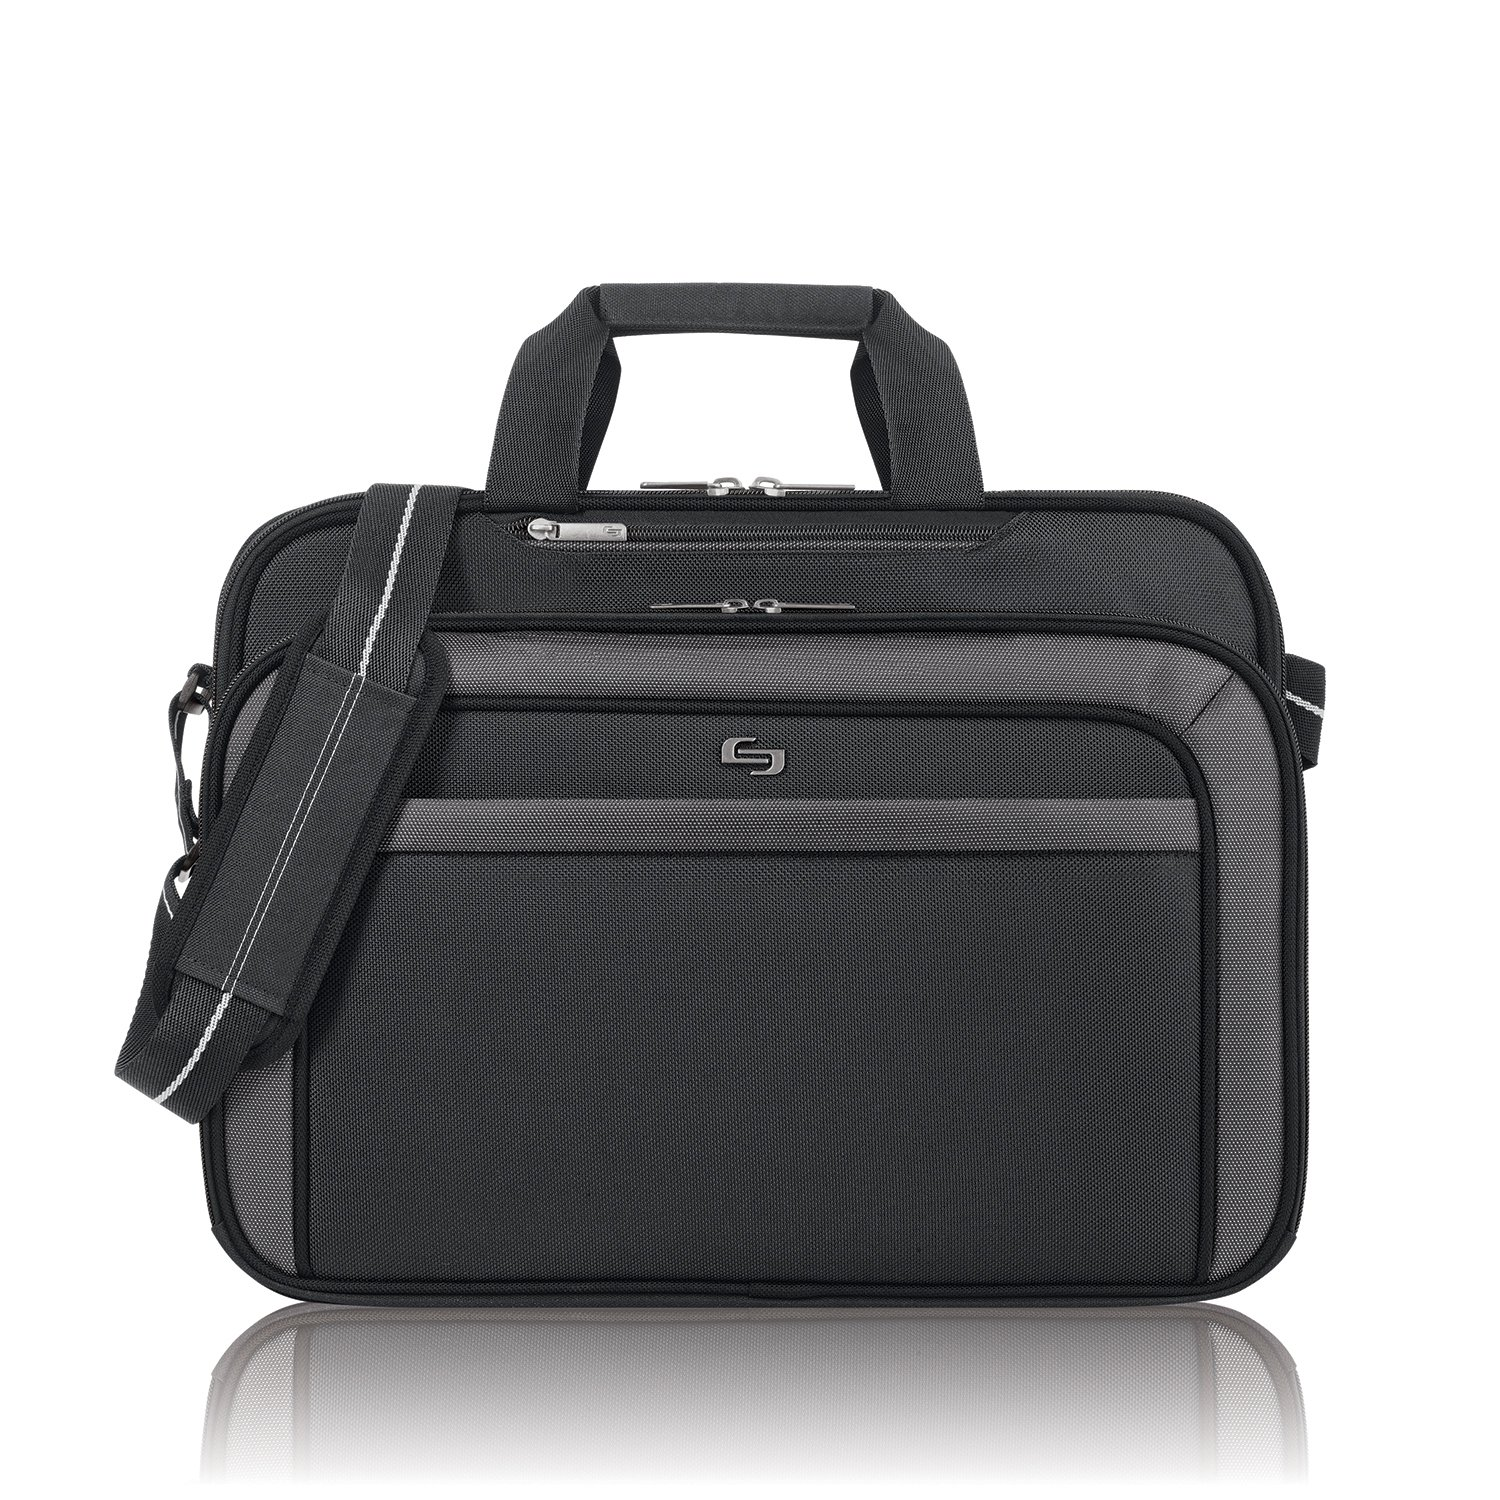 Solo Empire 17.3 Inch Laptop Briefcase, TSA Friendly, Black/Grey CLA314-4U2